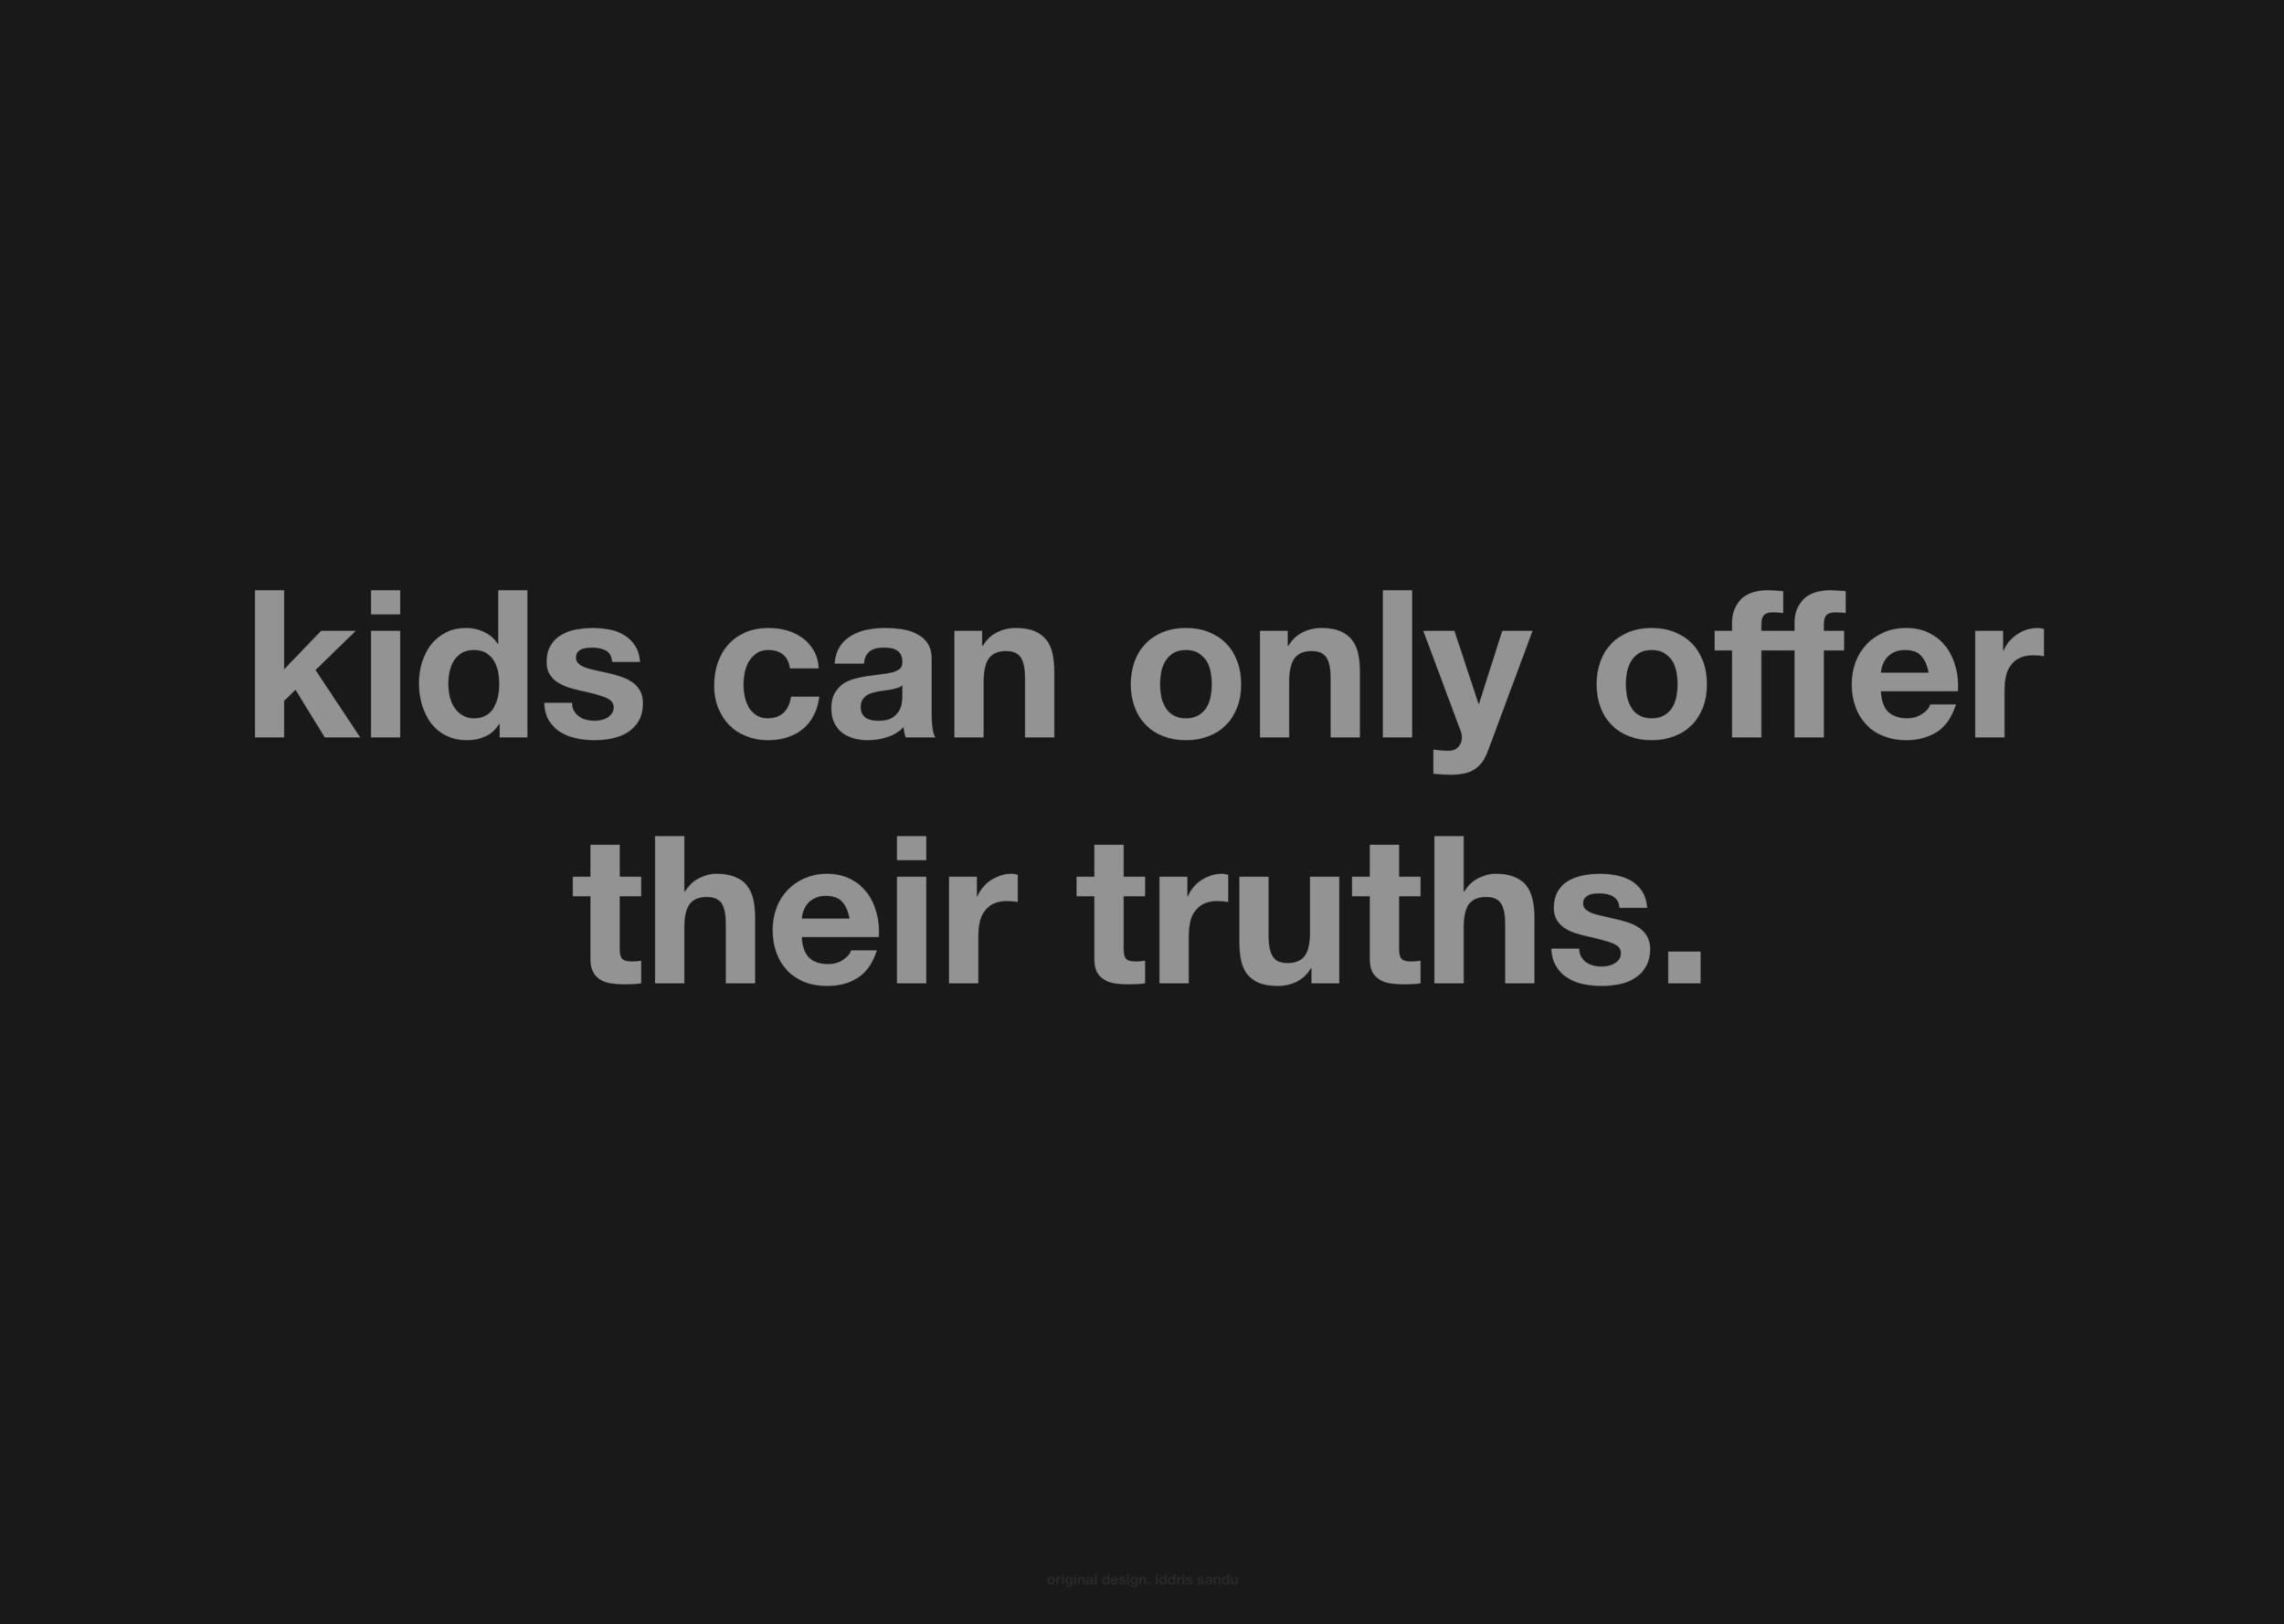 KIDS can only offer their truths.png